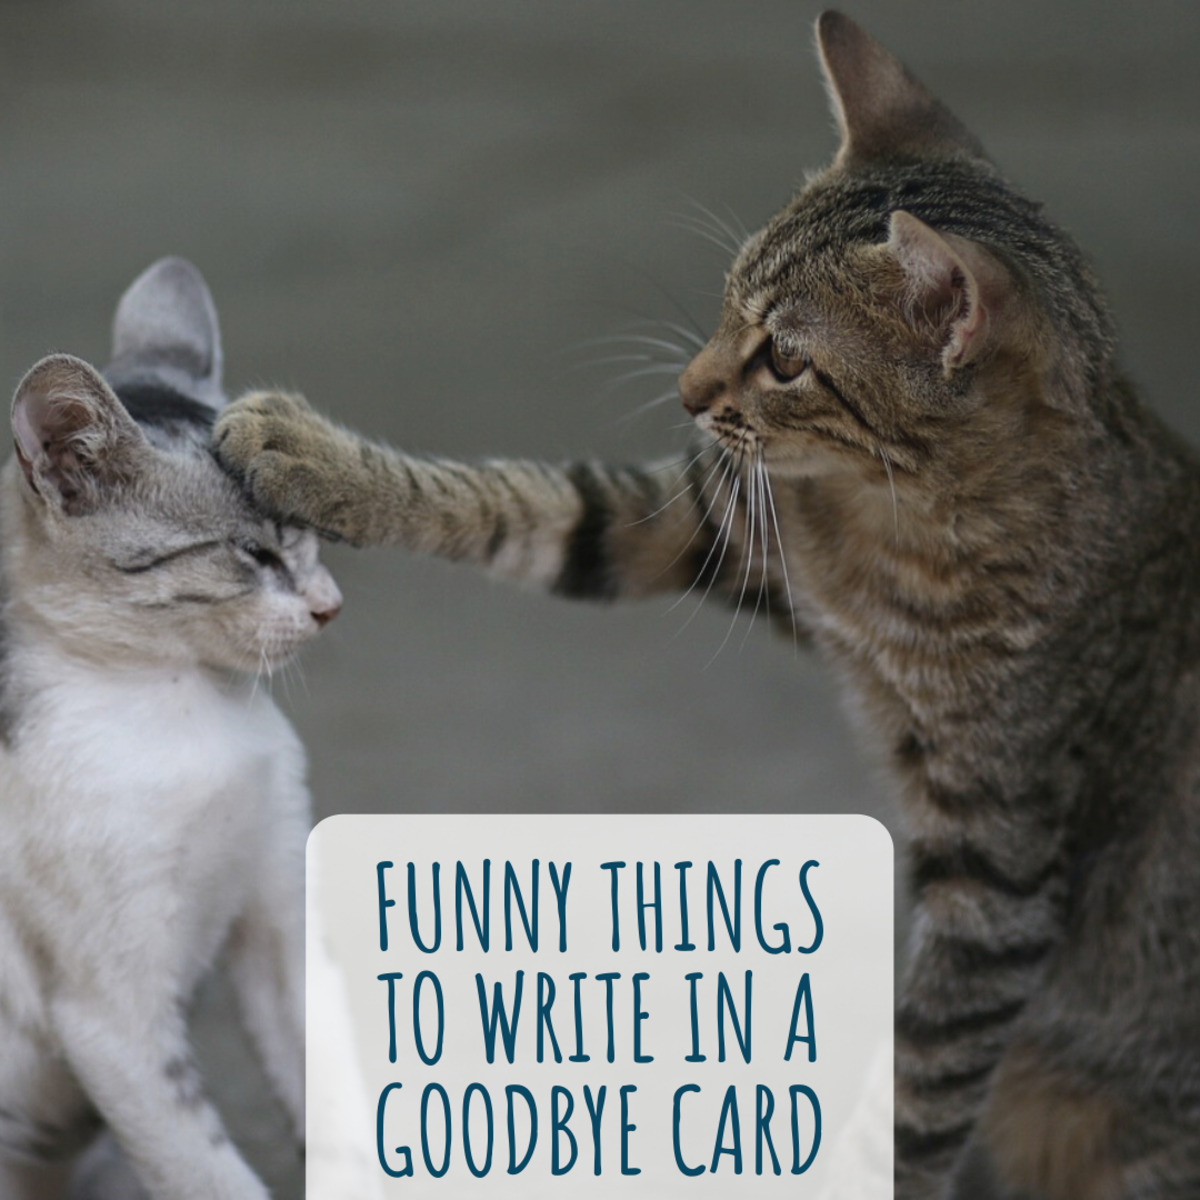 Here are some funny things to write in a goodbye card for coworkers or a friend or loved one moving